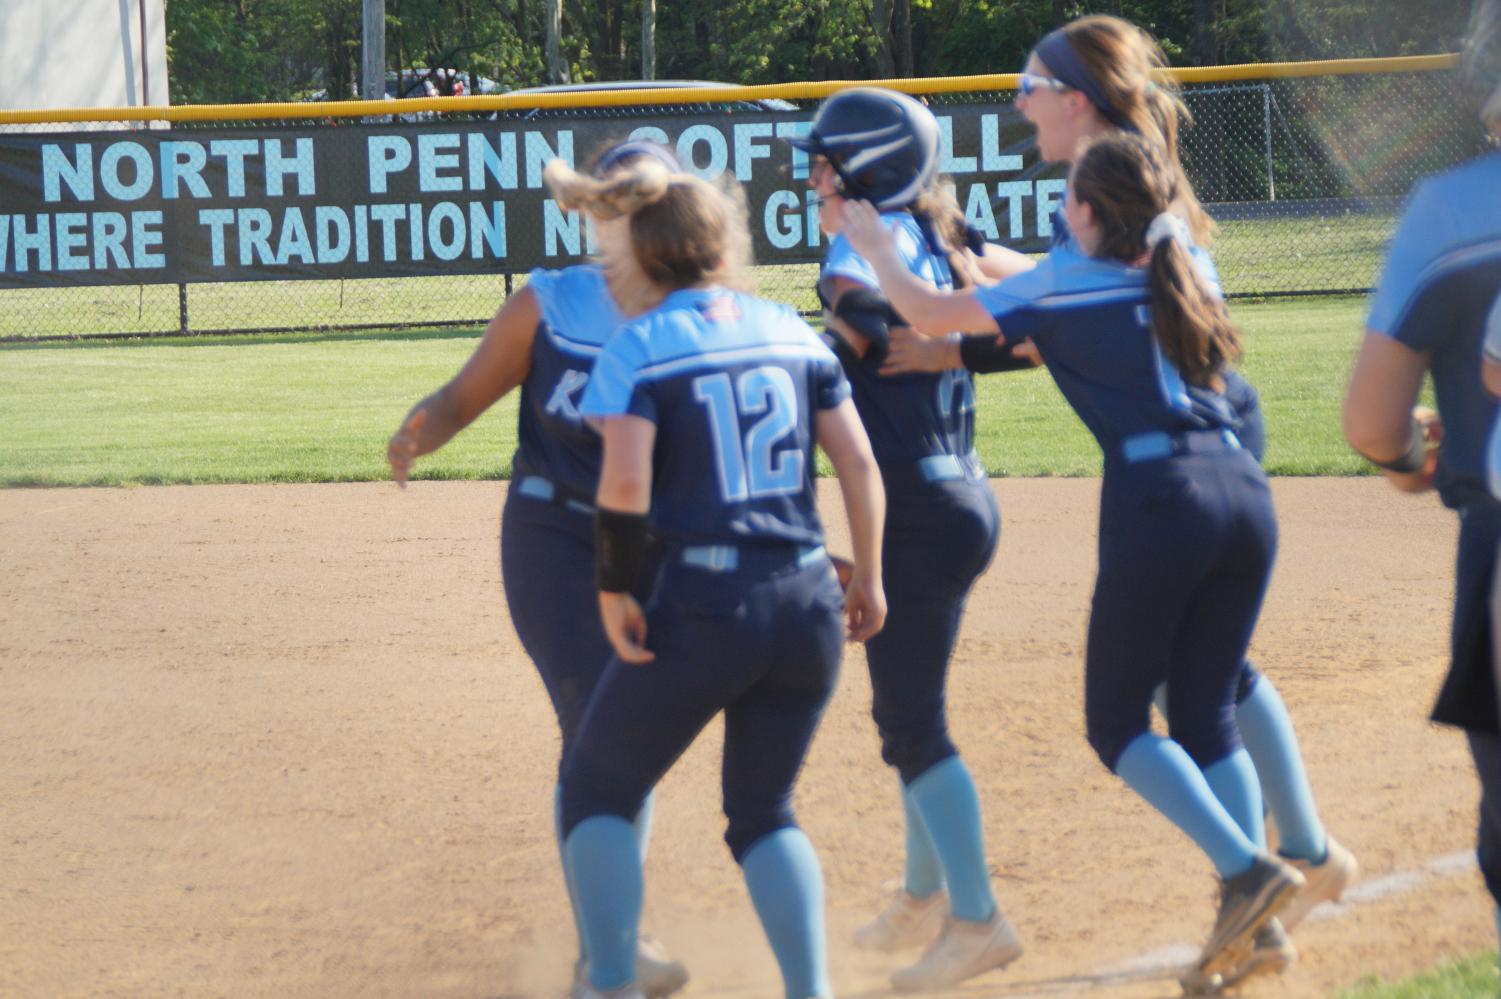 The Knights celebrate with Jordan Pietrzykoski after her walk-off hit.